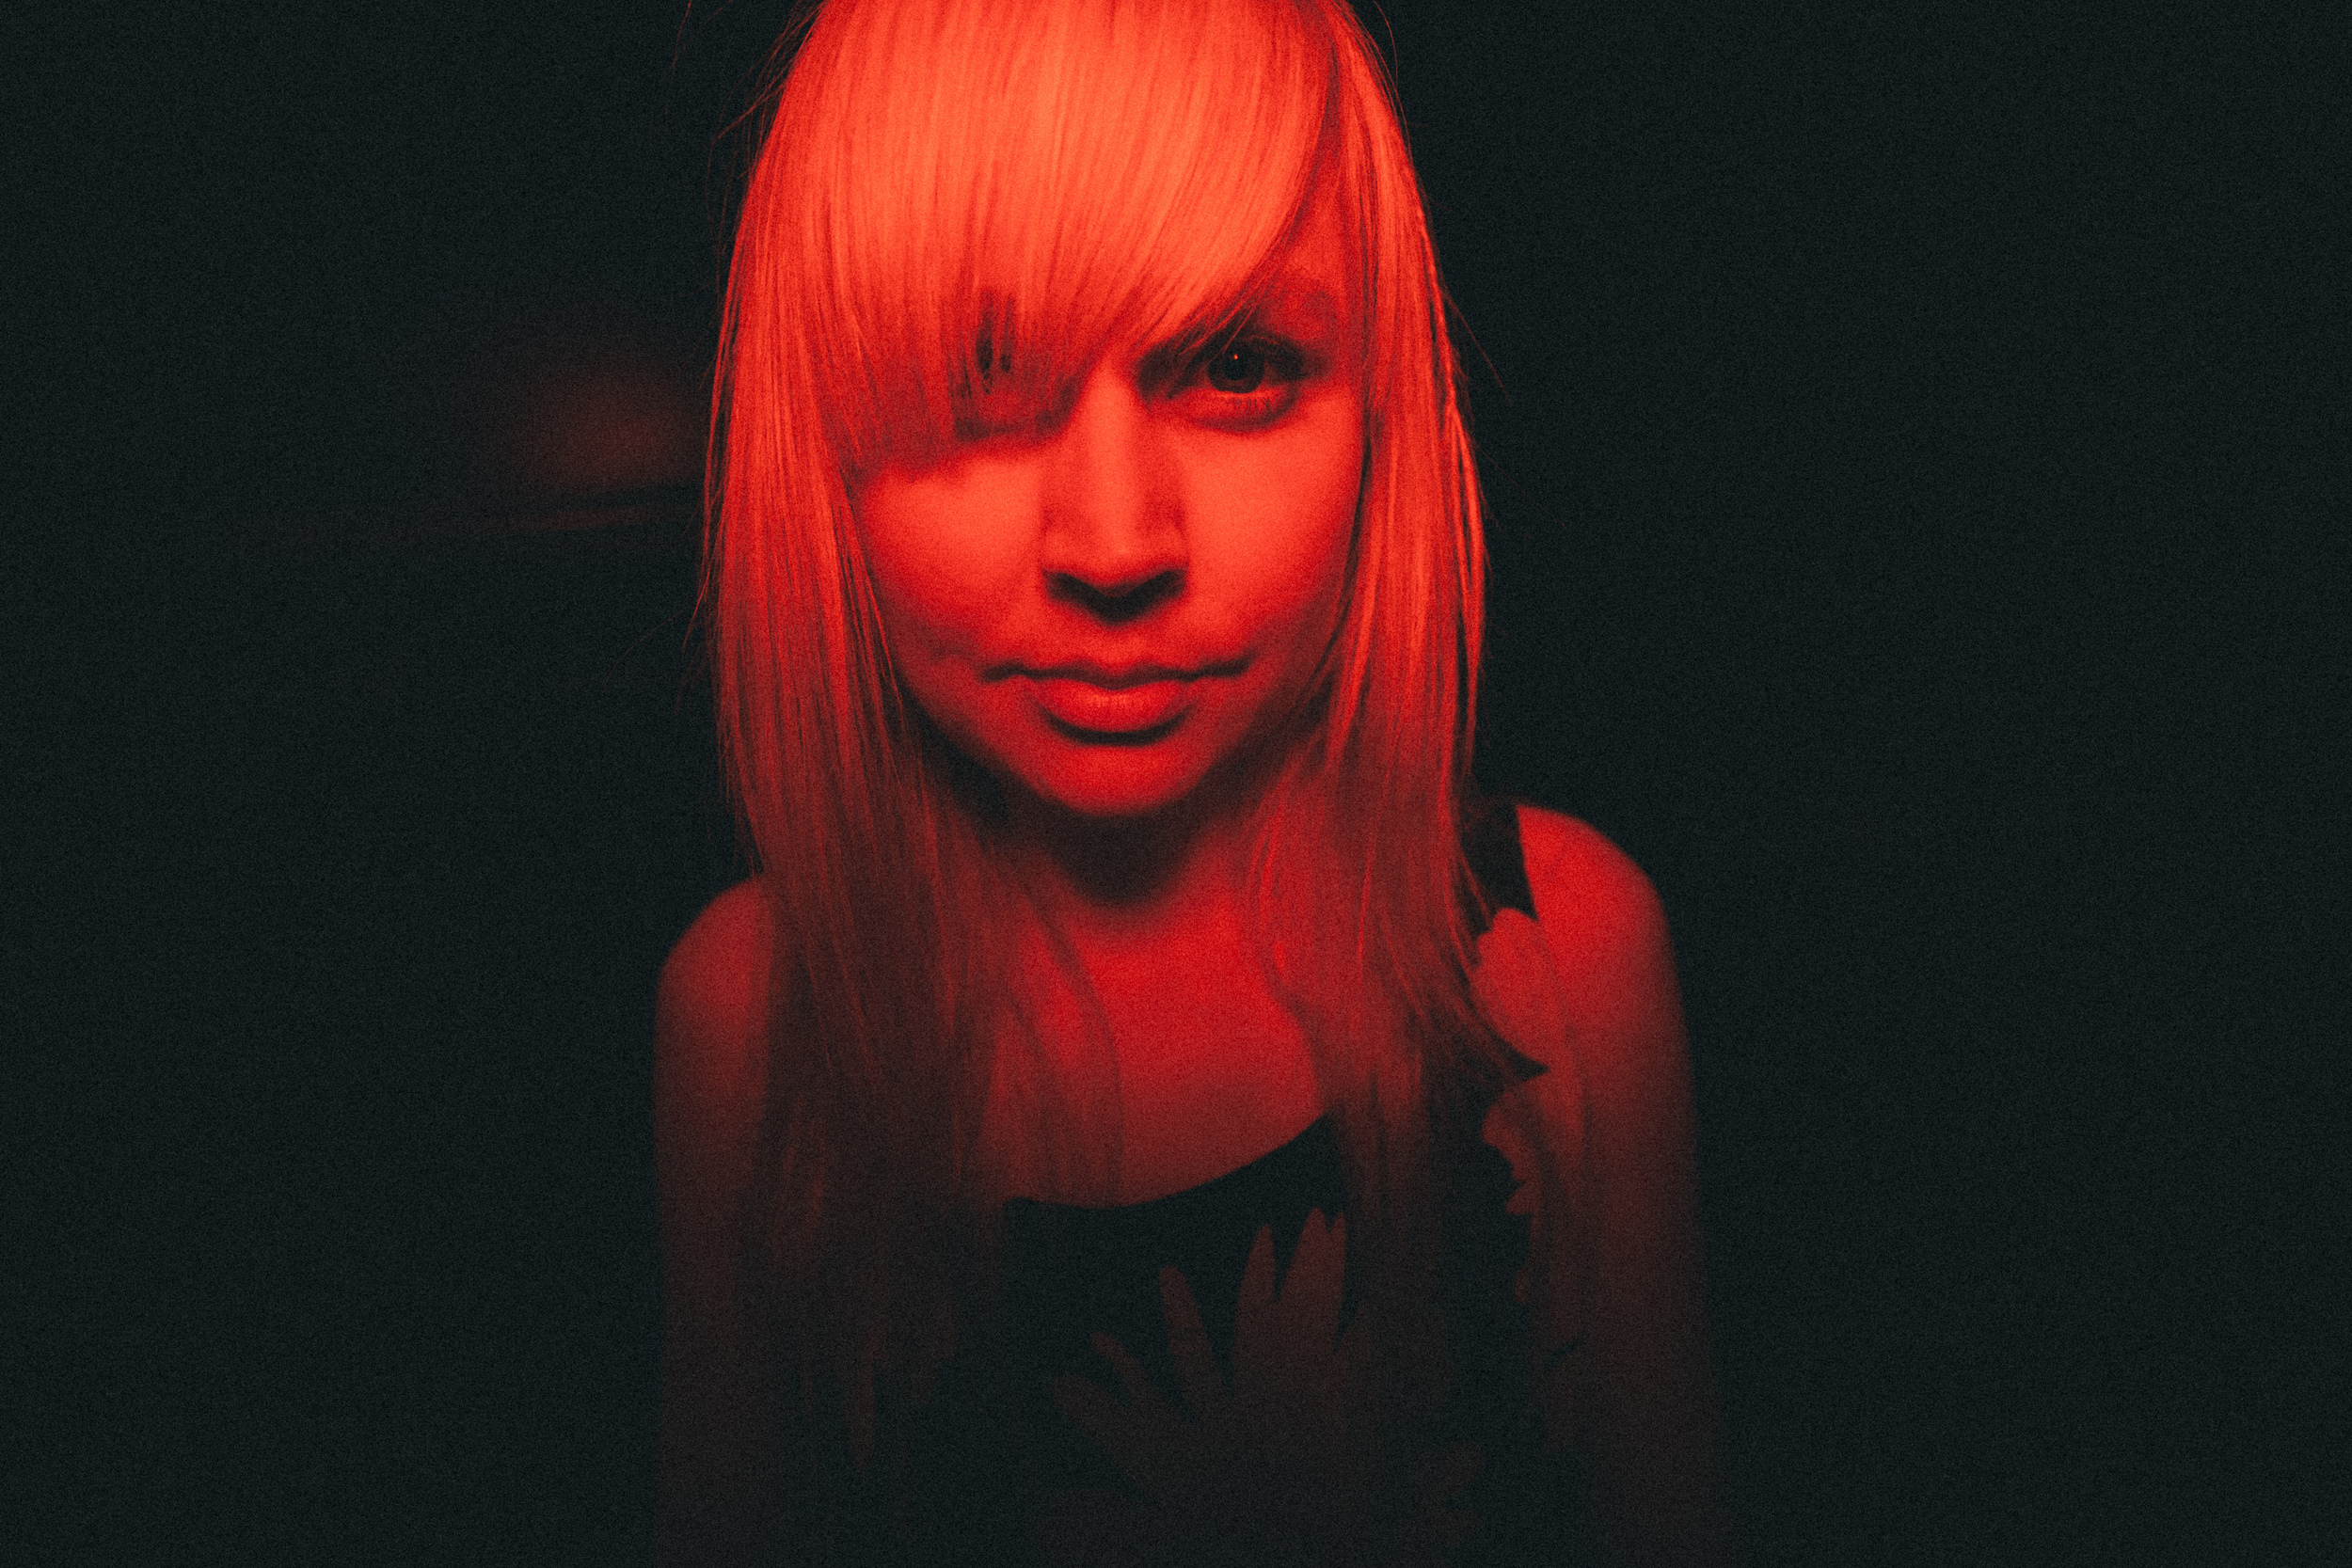 anna_red_lightroom'd.jpg